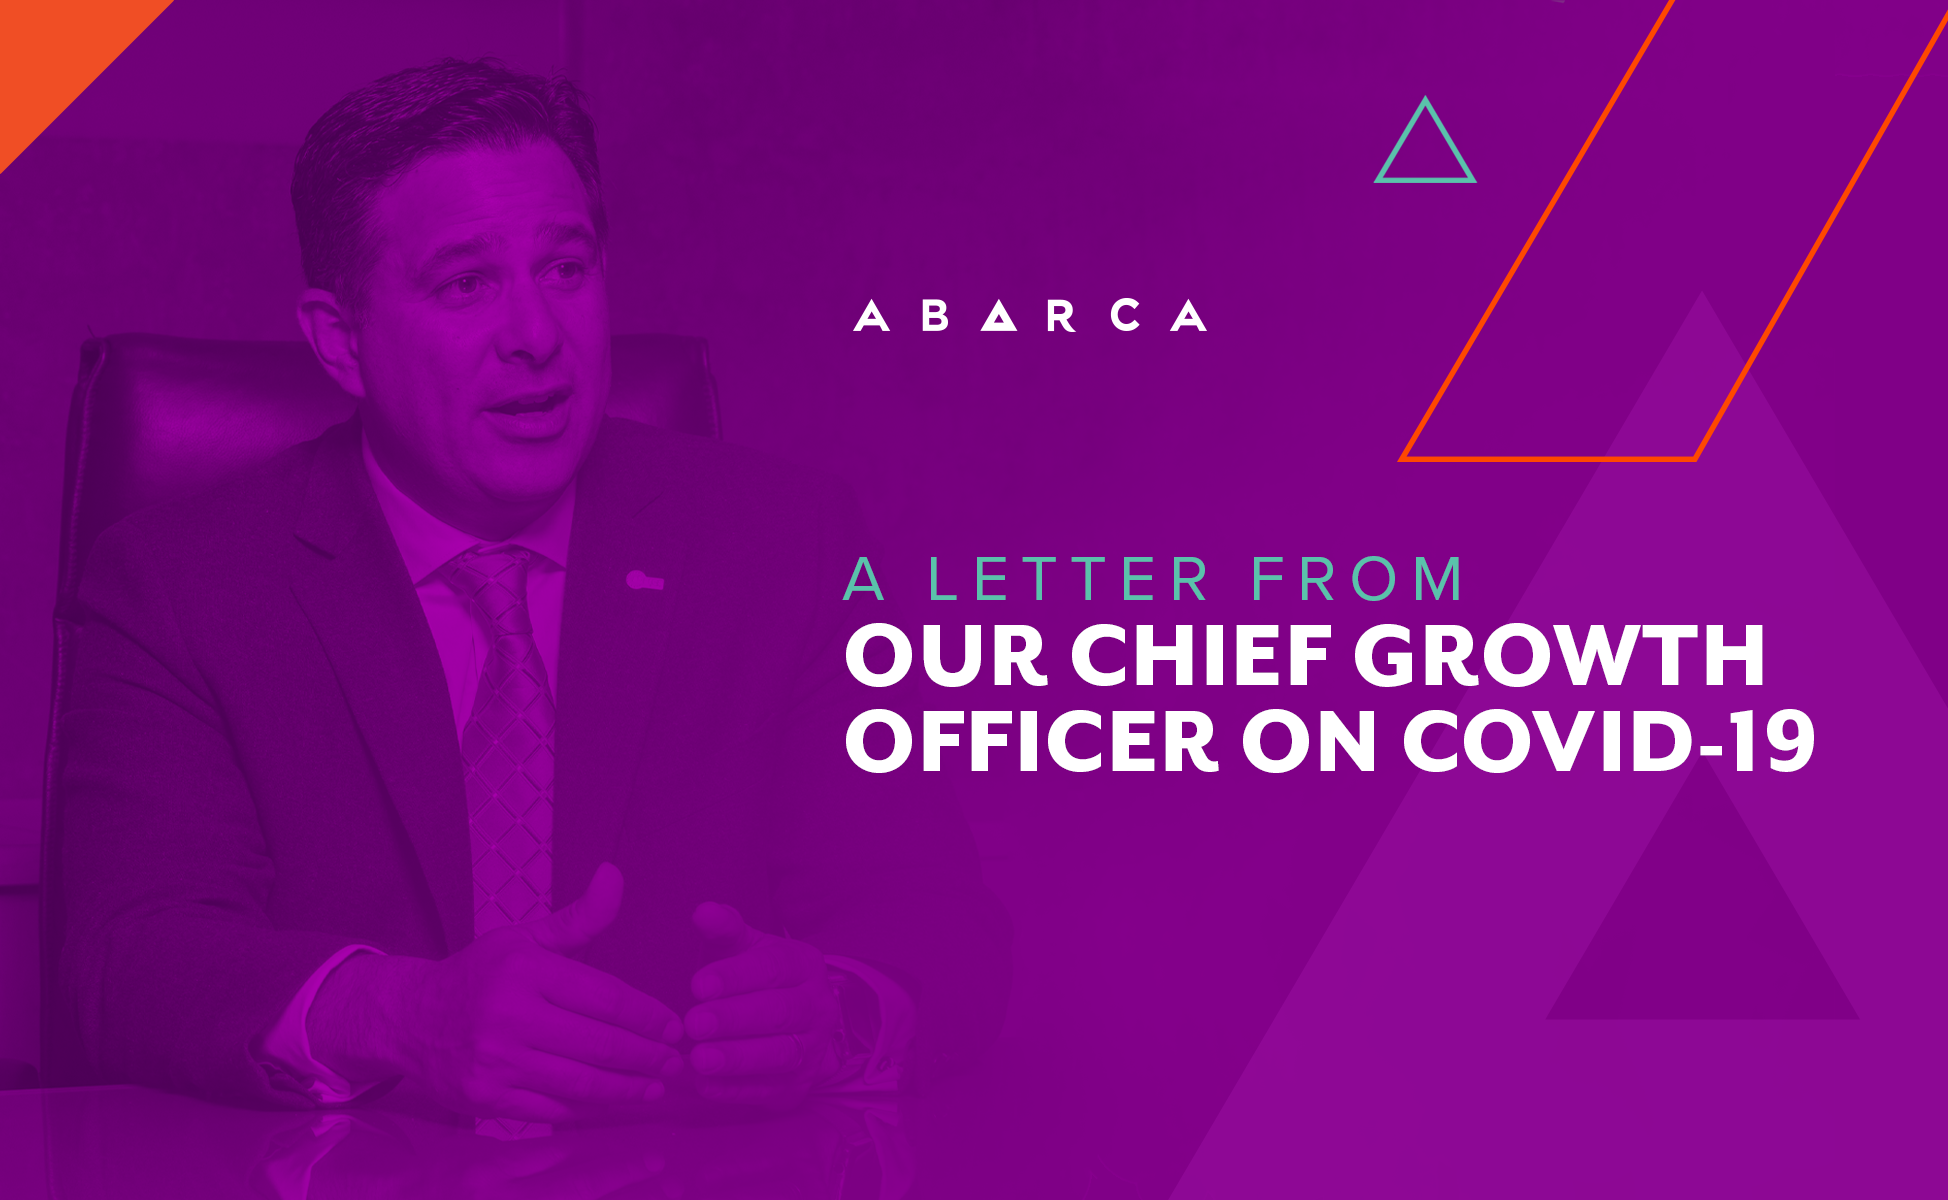 Abarca_Post_JavierGonzalez_A LETTER FROM OUR CHIEF GROWTH OFFICER ON COVID-19